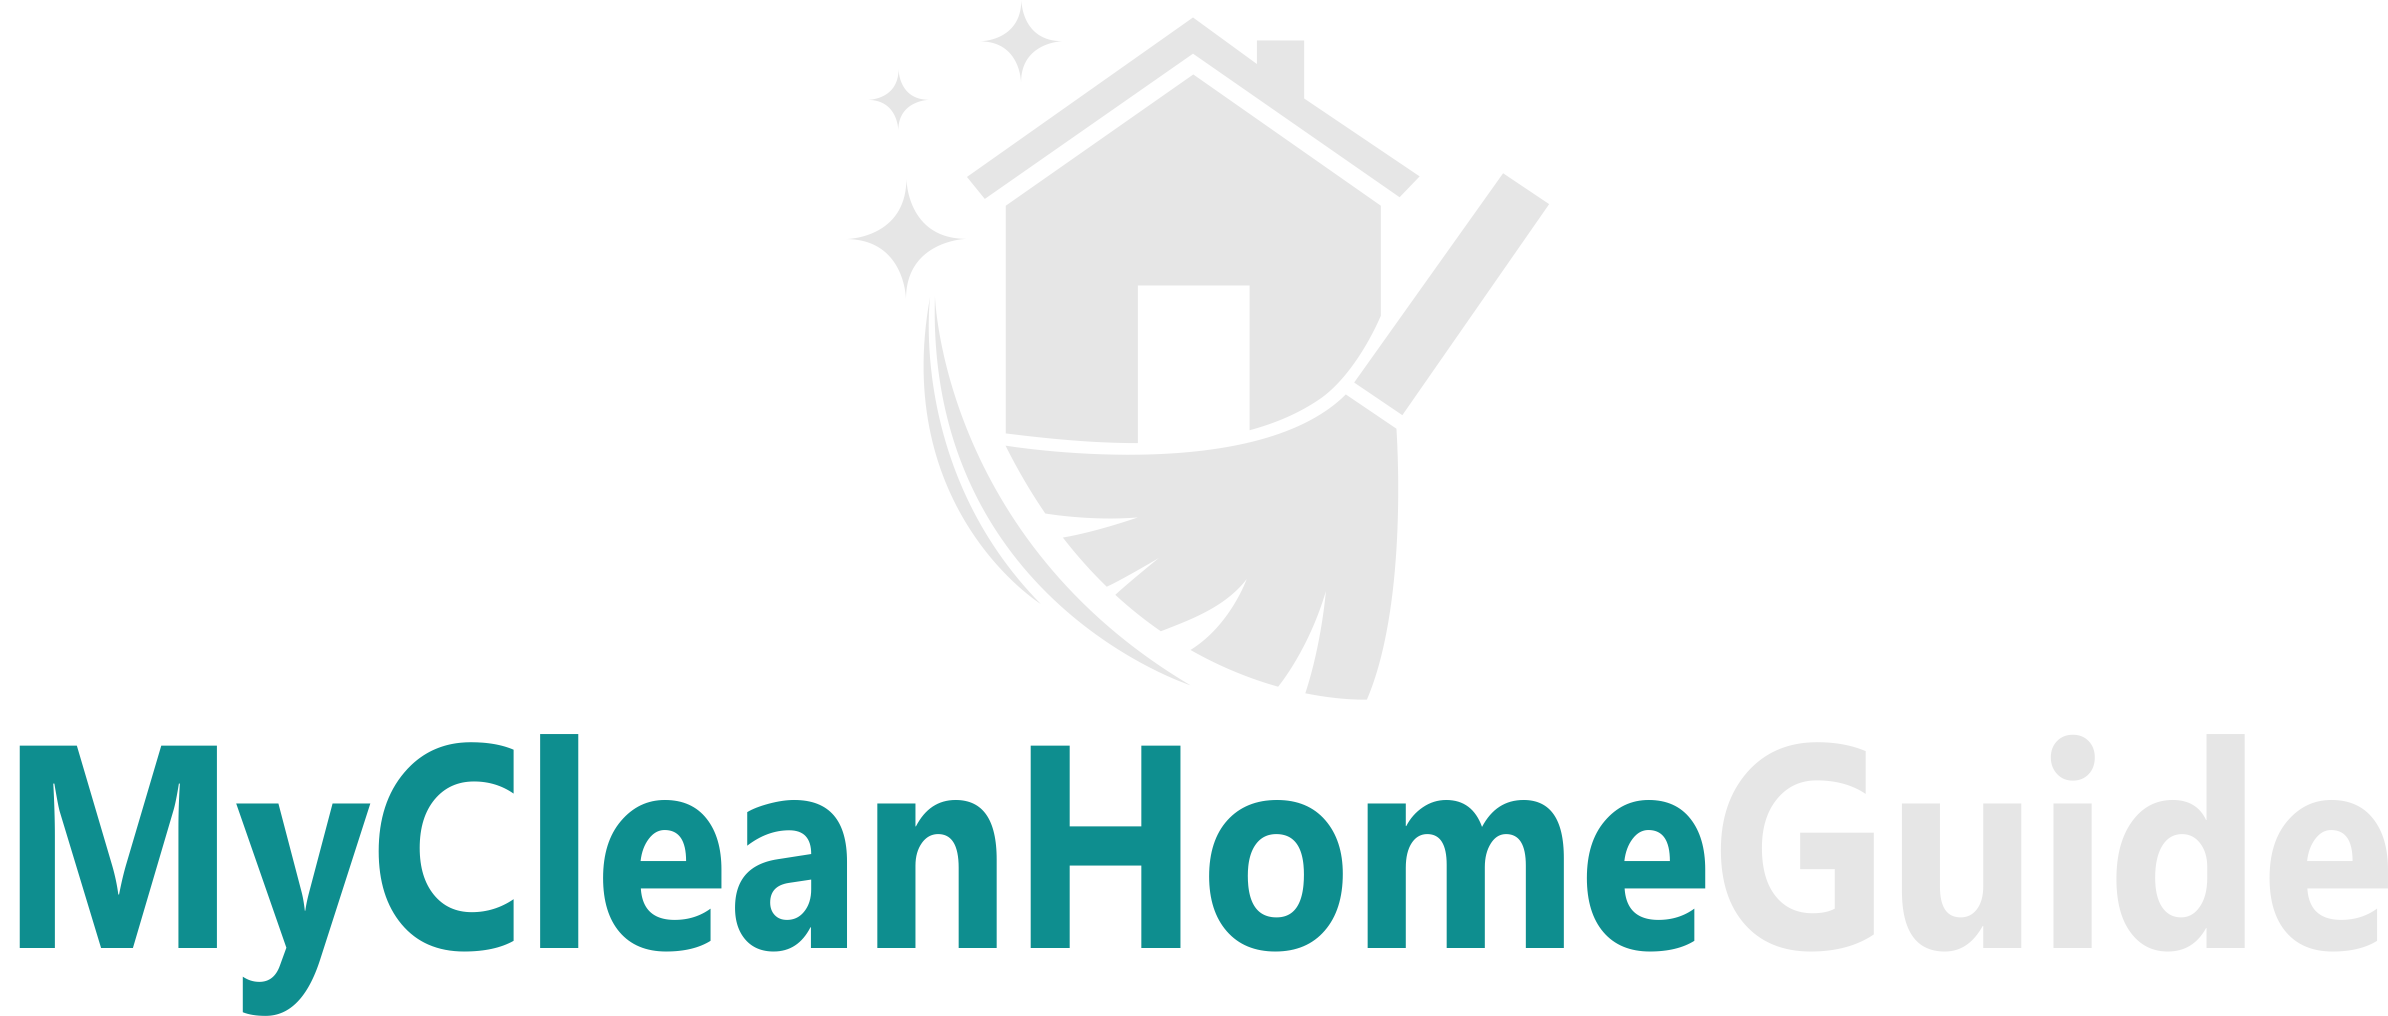 My Clean Home Guide